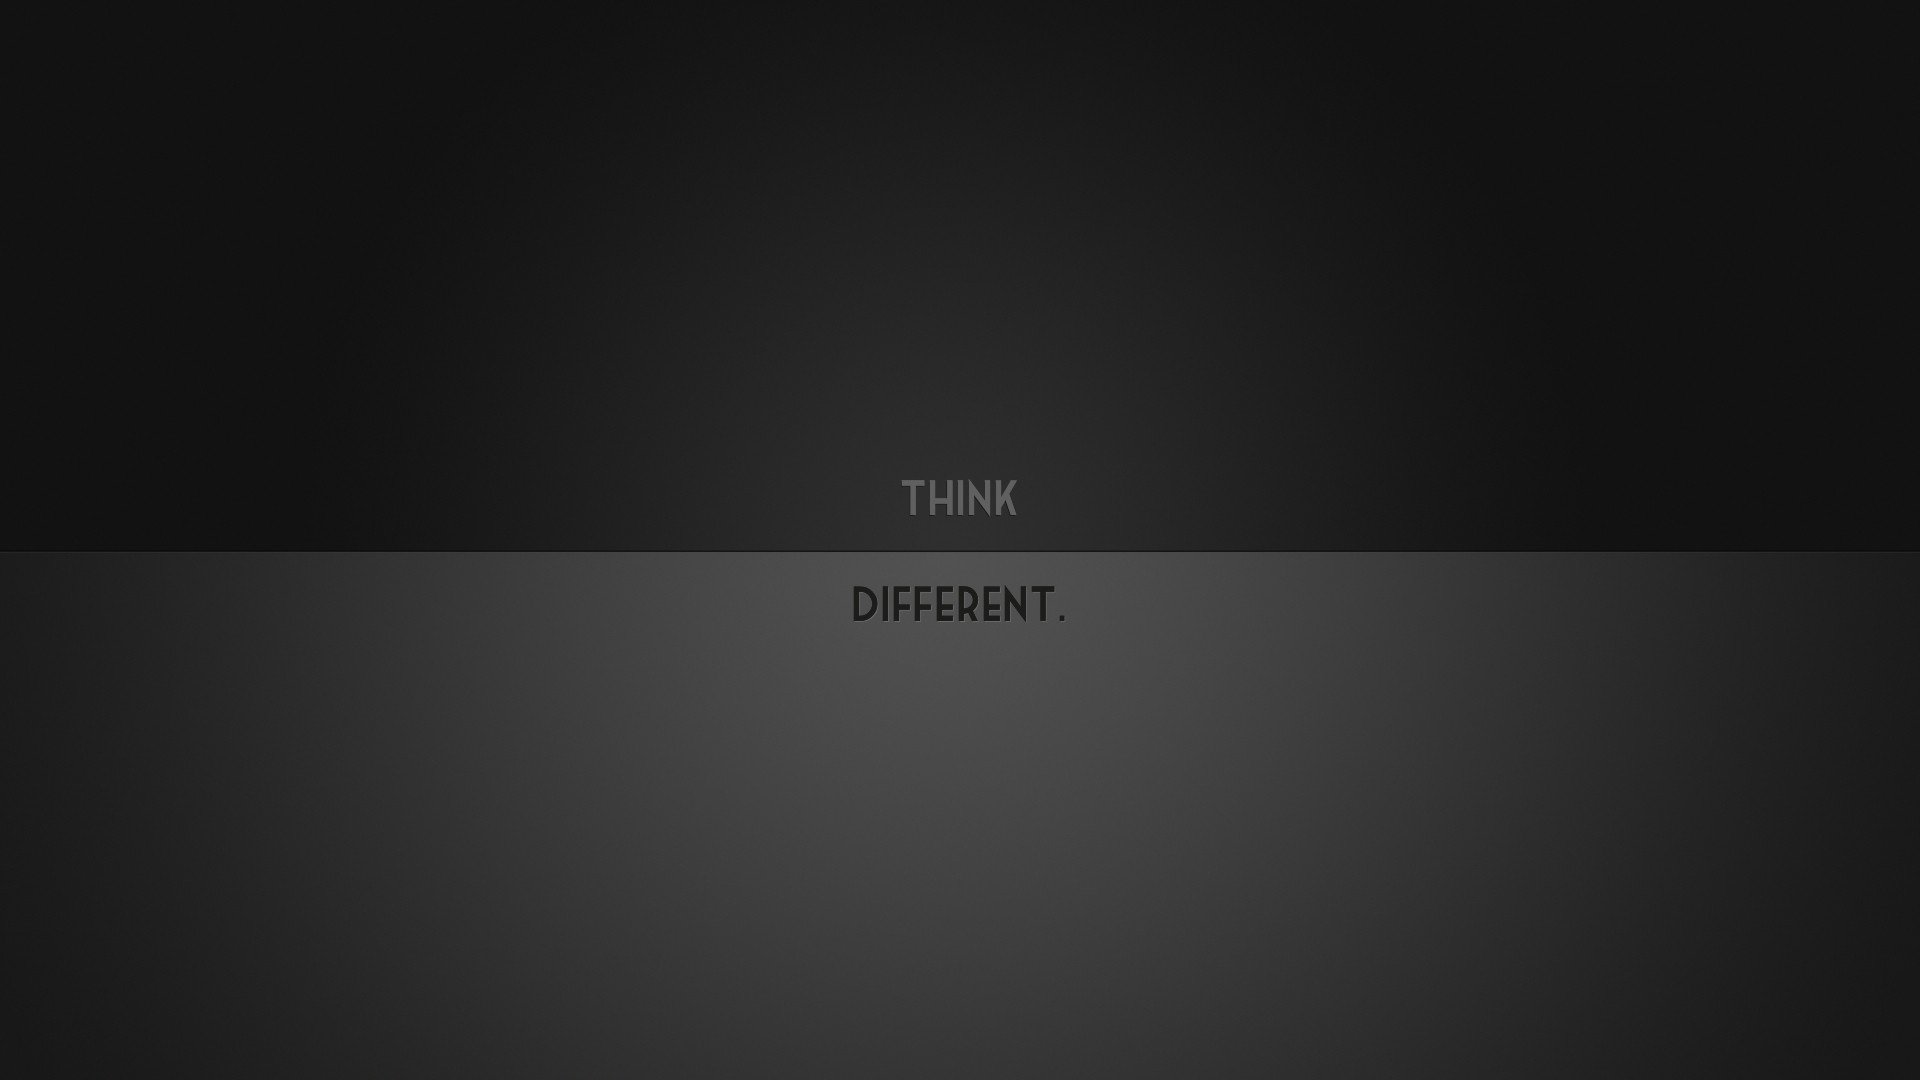 Minimalistic Think Different HD Desktop wallpaper images and photos 1920x1080